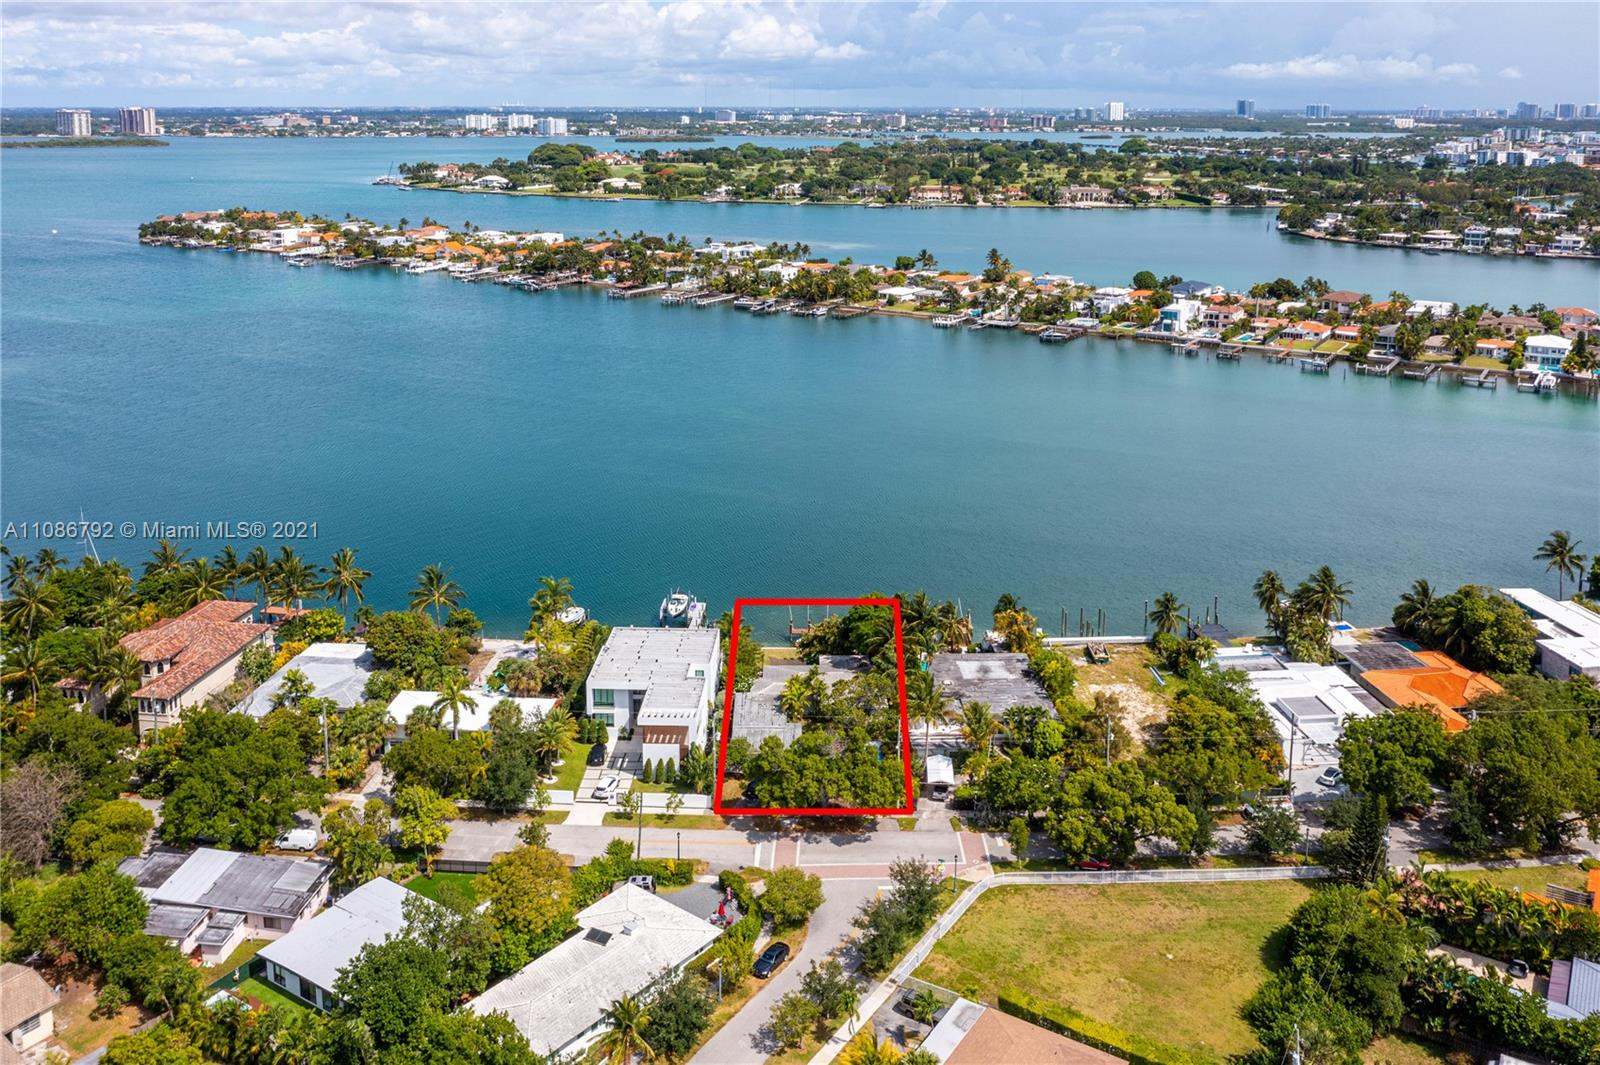 Classic 1950s Waterfront home located on guard gated Biscayne Point Island. Bright, open, and spacious with a total of 4 bedrooms and 3 baths, plus  2 car garage on an oversized 11,250 SF lot with 75 Ft on the water, perfectly positioned to maximize the wide bay views.   Eat-in kitchen, formal living and dining, plus waterfront family room surrounded by floor to ceiling glass sliding doors.   Update, renovate, or recreate to build your dream home in a desirable and secure location. Ideal for boaters too with dock, wide water open bay  access, and no fixed bridges!